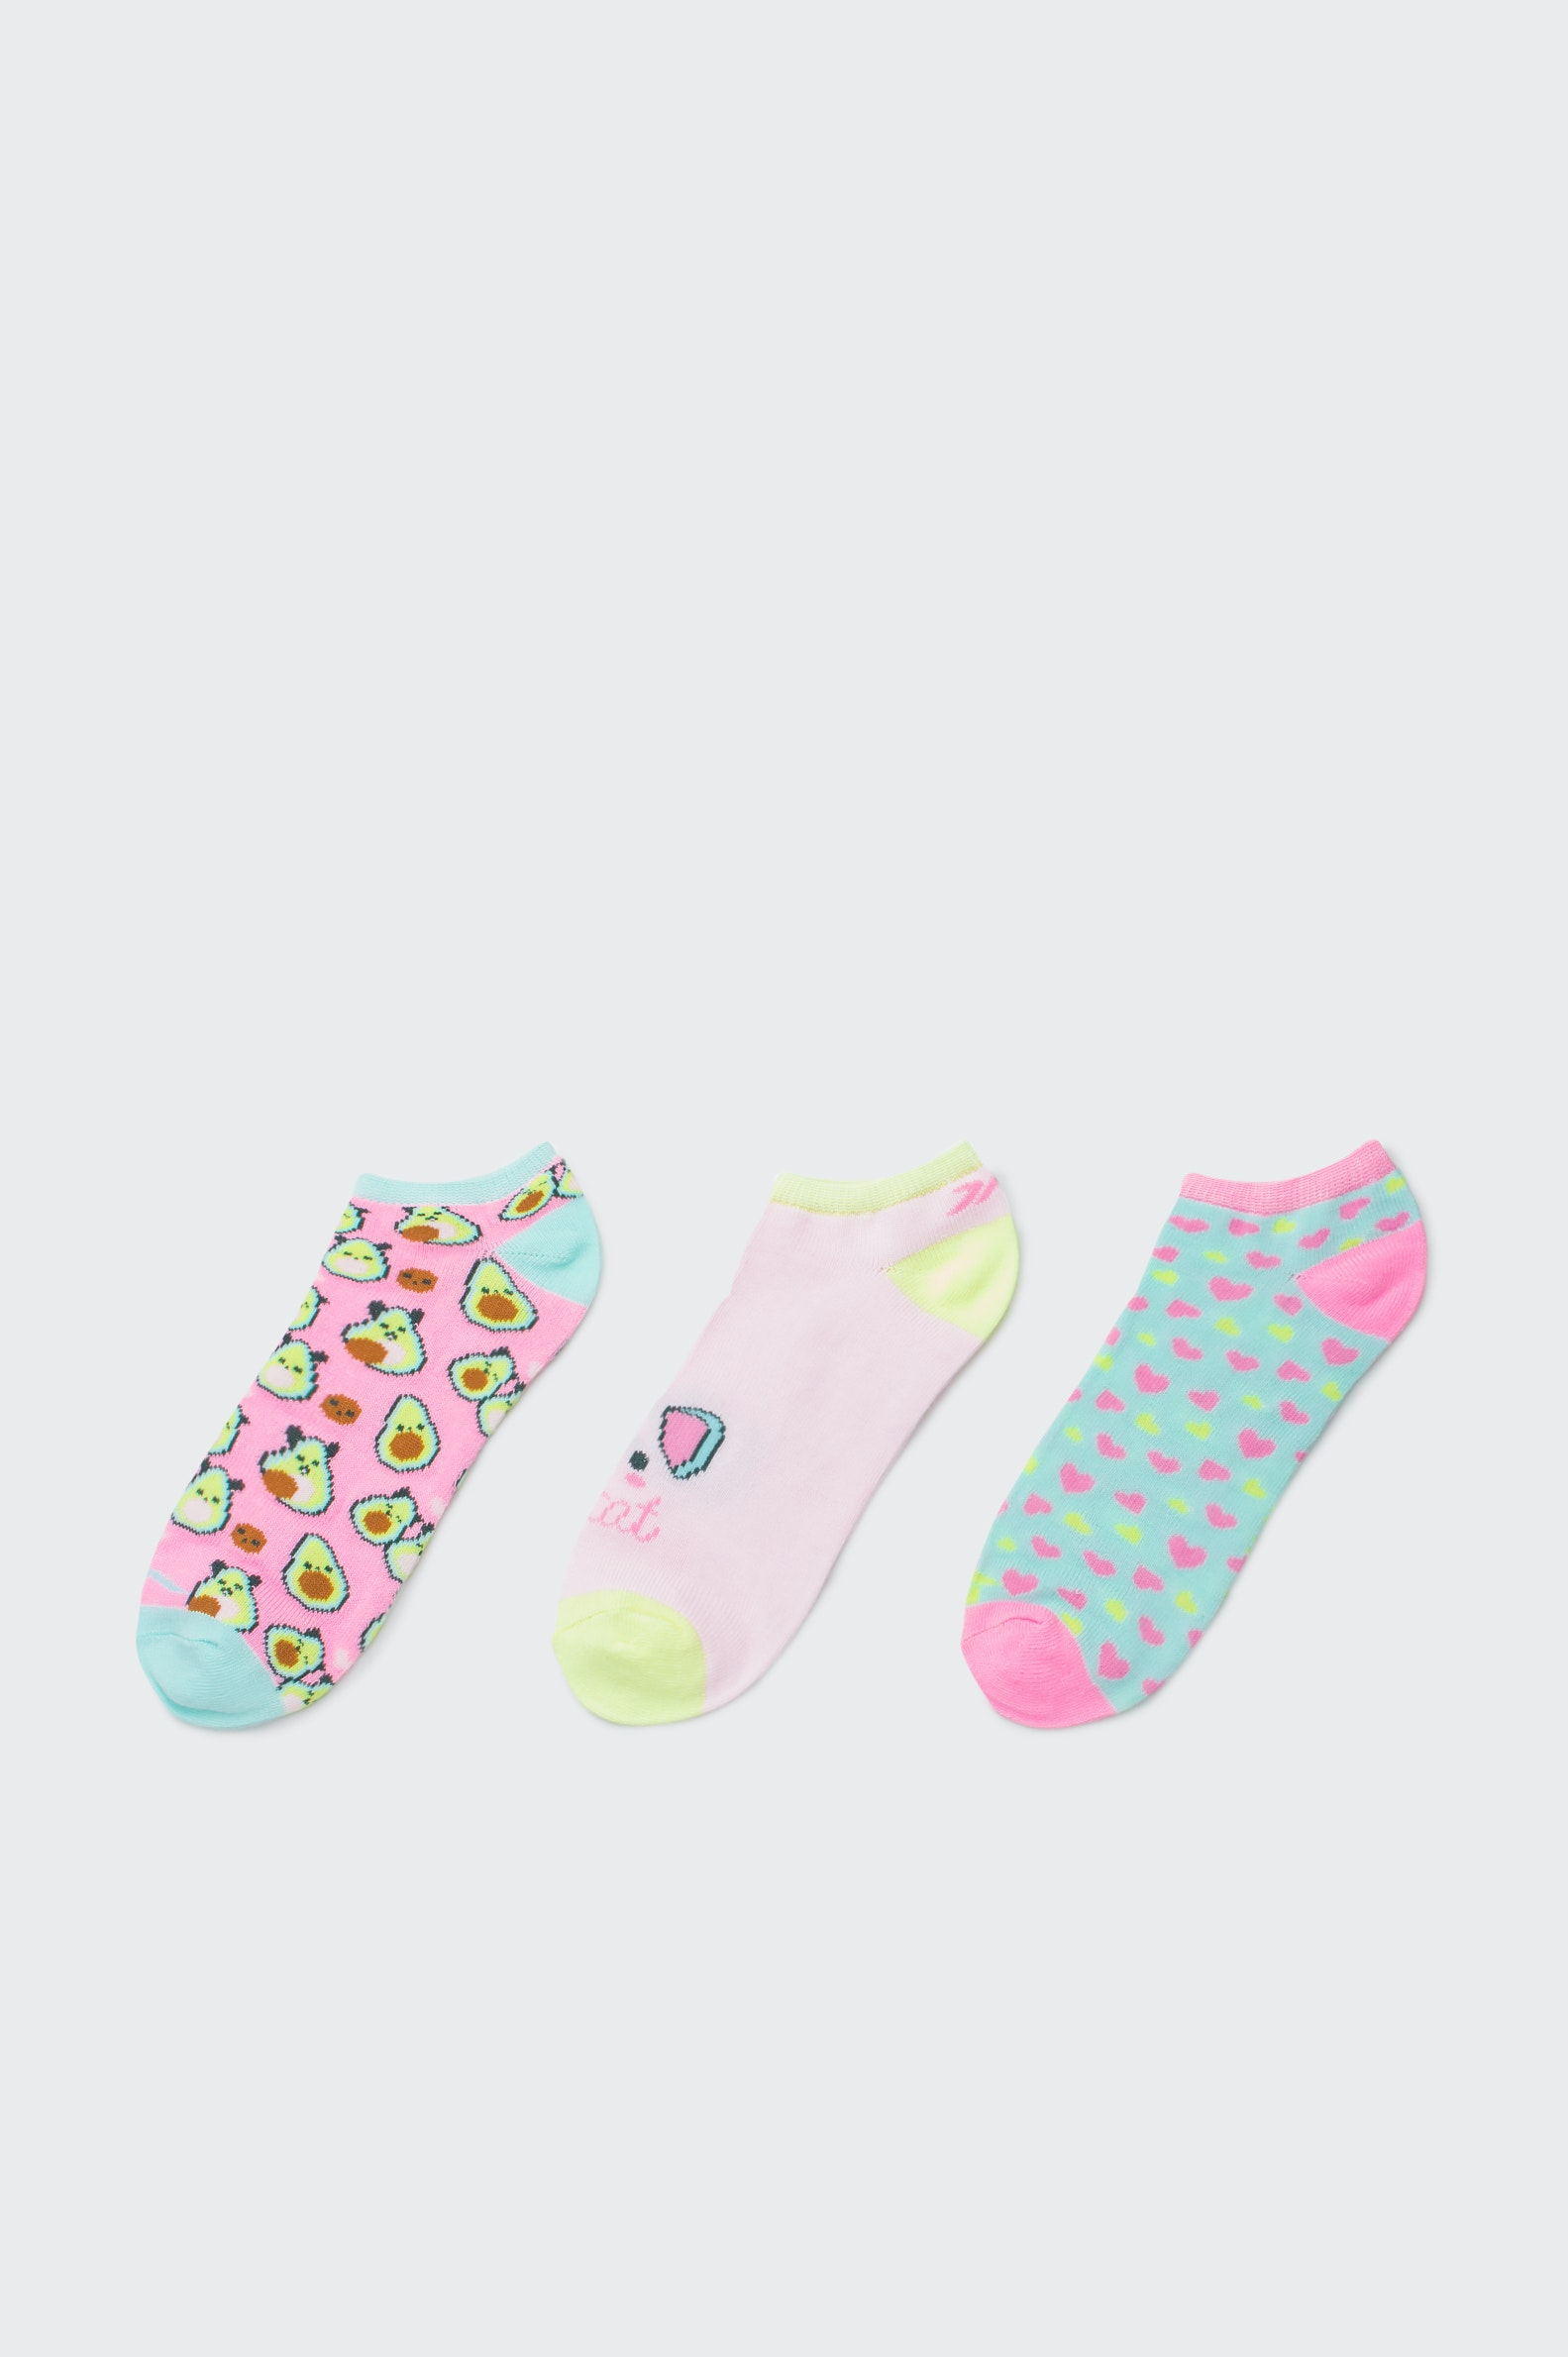 CHAUSSETTES FREESTYLE TENTH PINKI FILLE